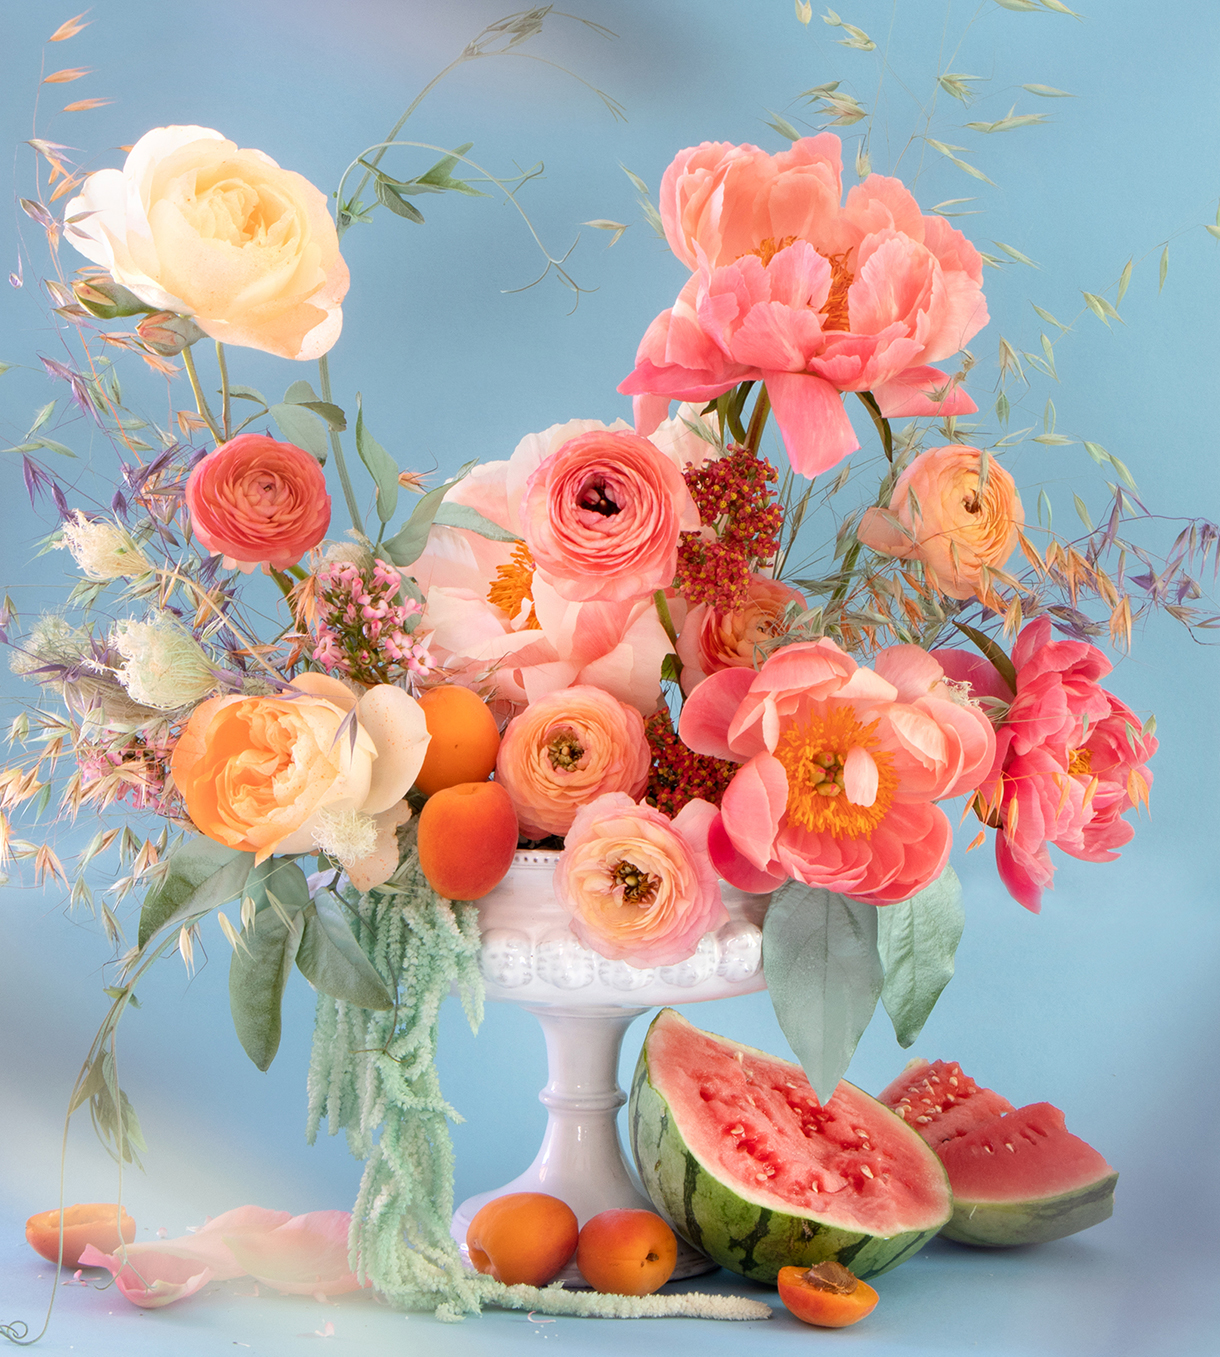 pink and orange flower arrangement with watermelons